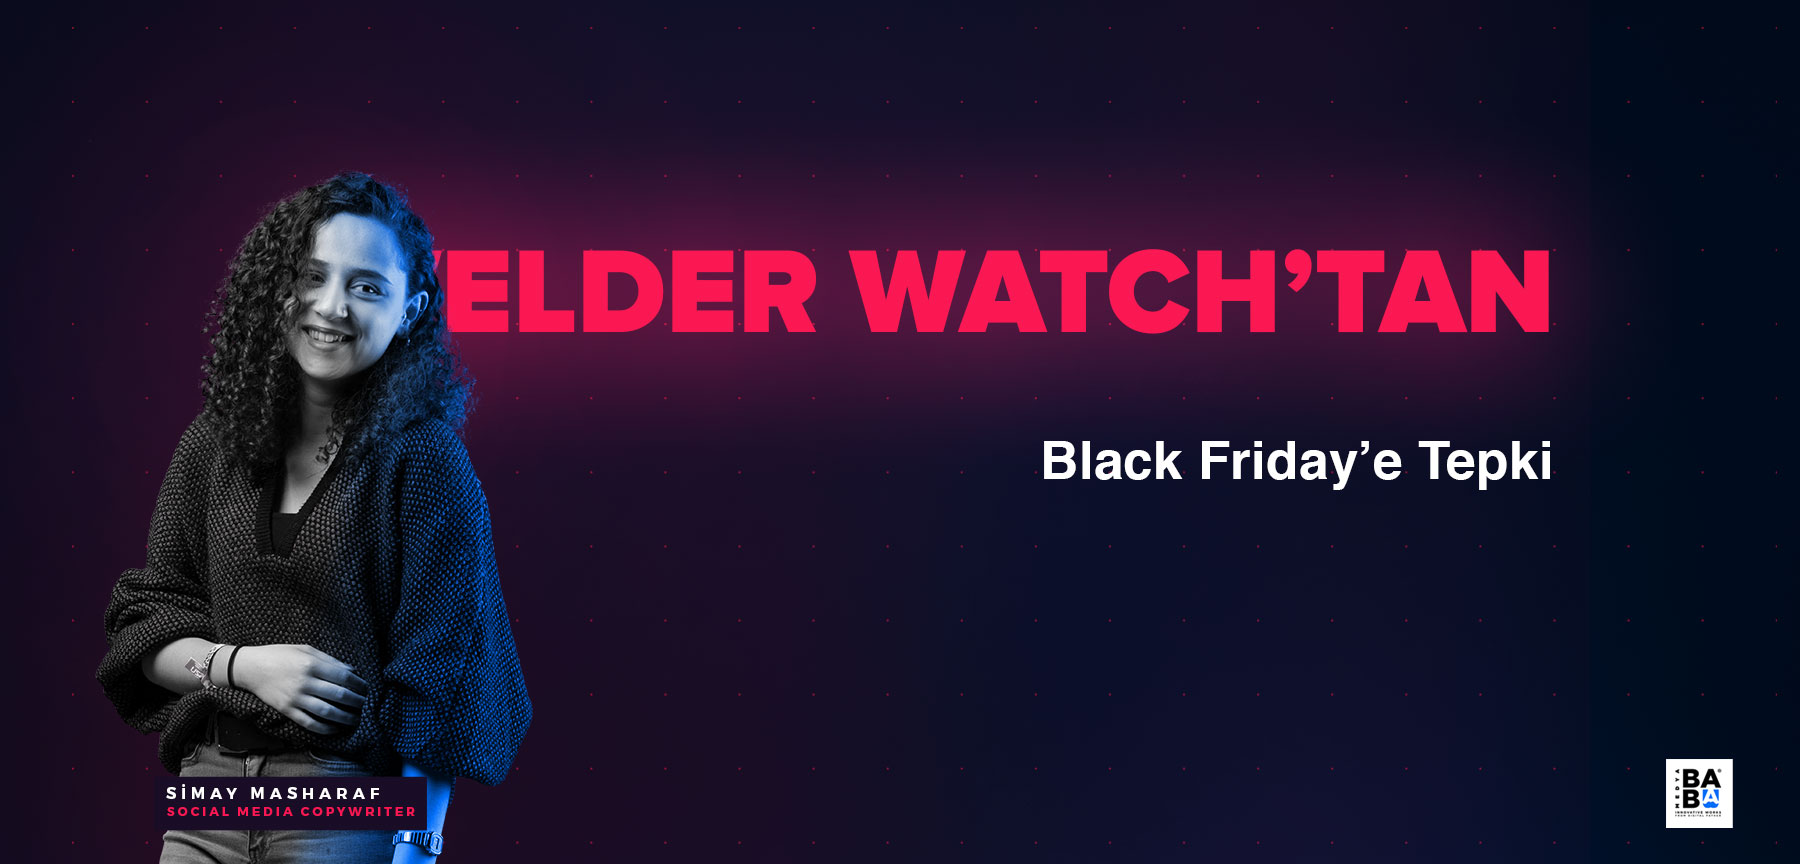 Welder Watch'tan Black Friday'e Tepki